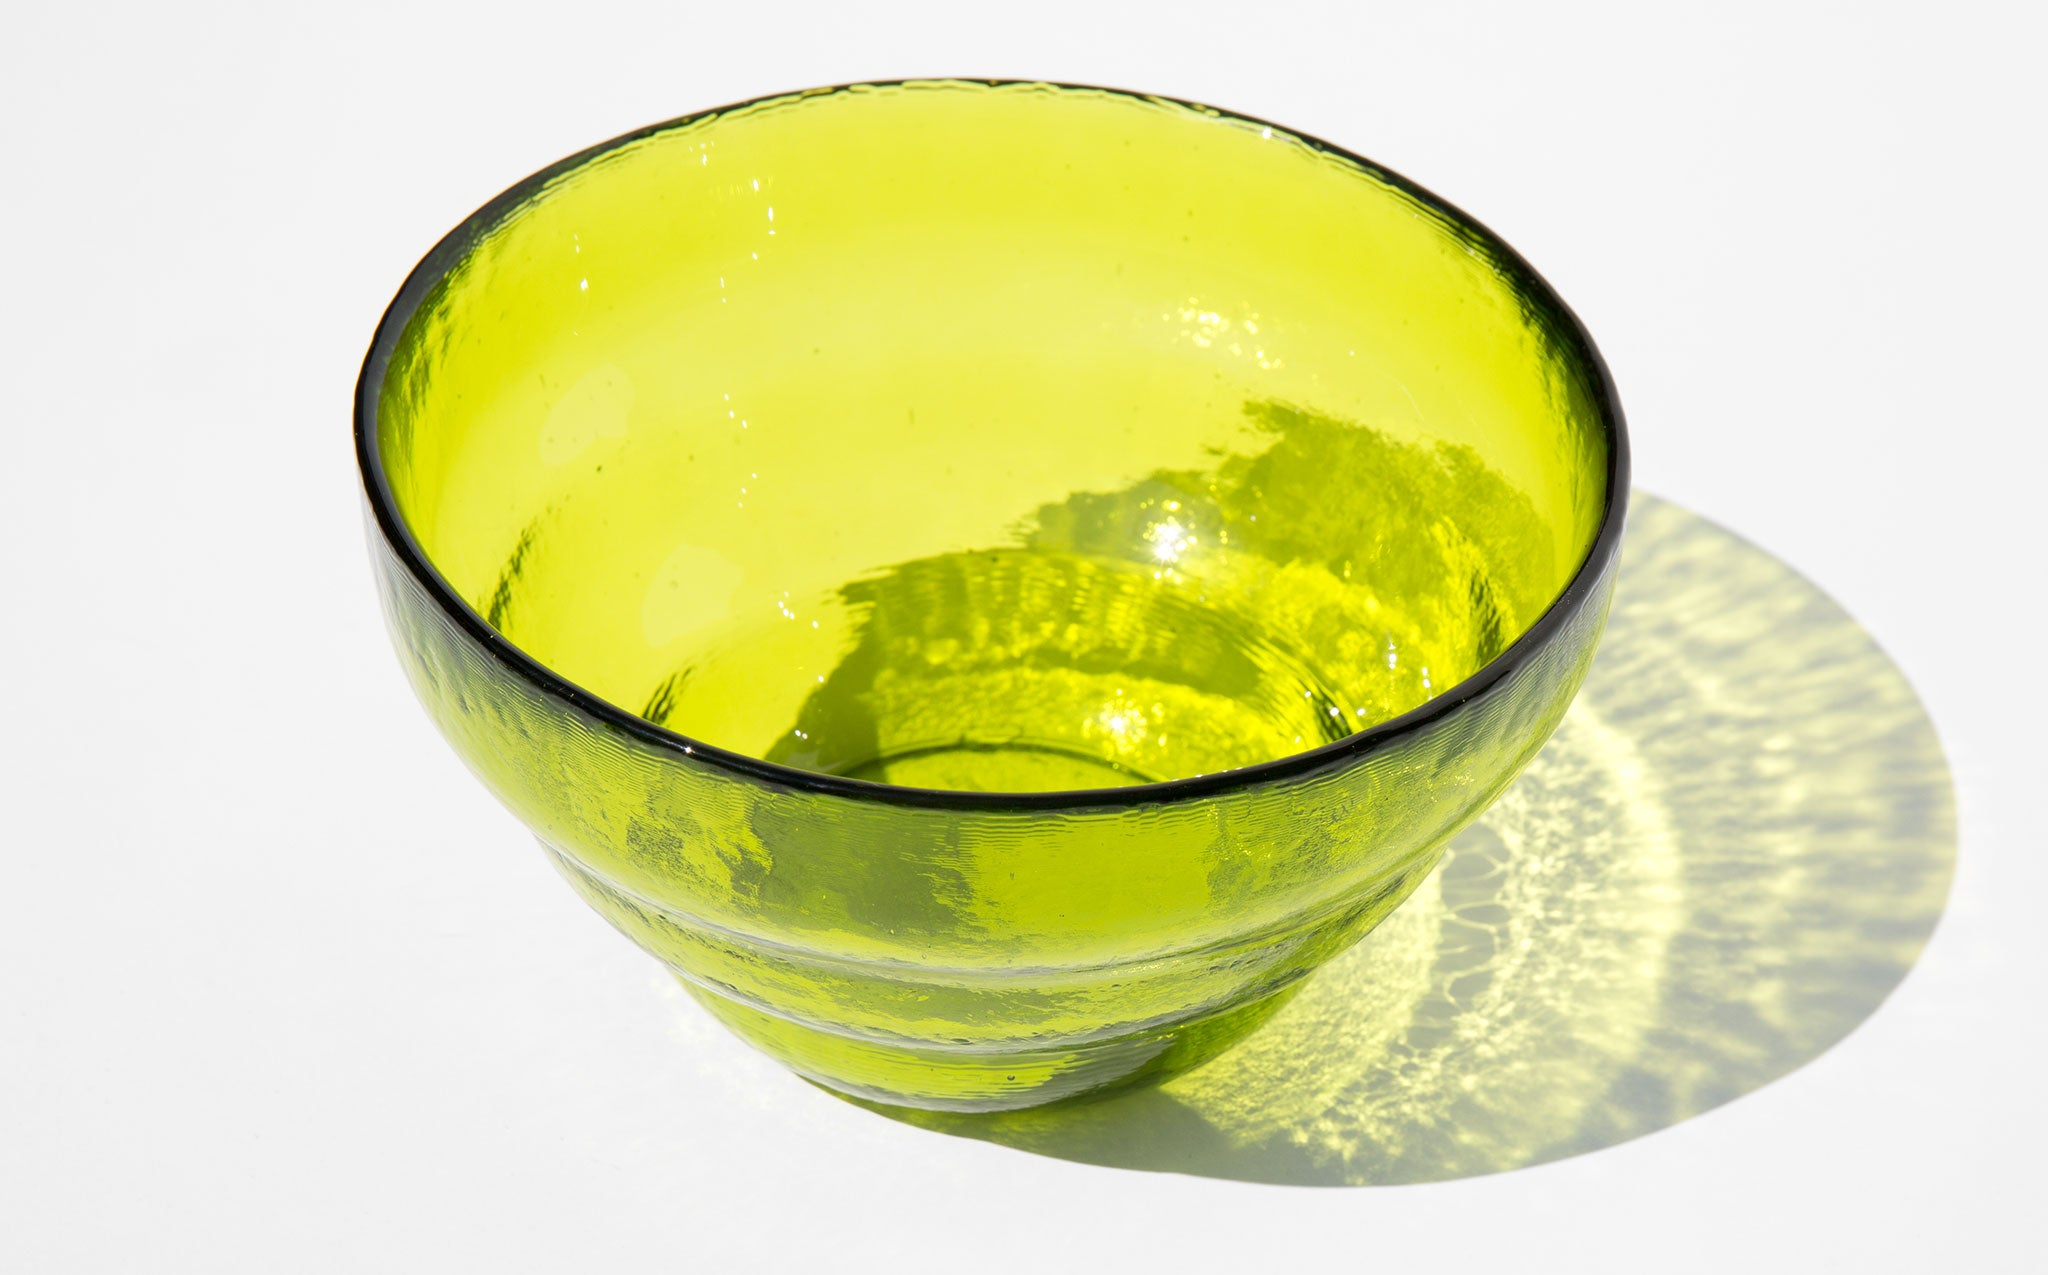 Blenko Avocado Glass Bowl